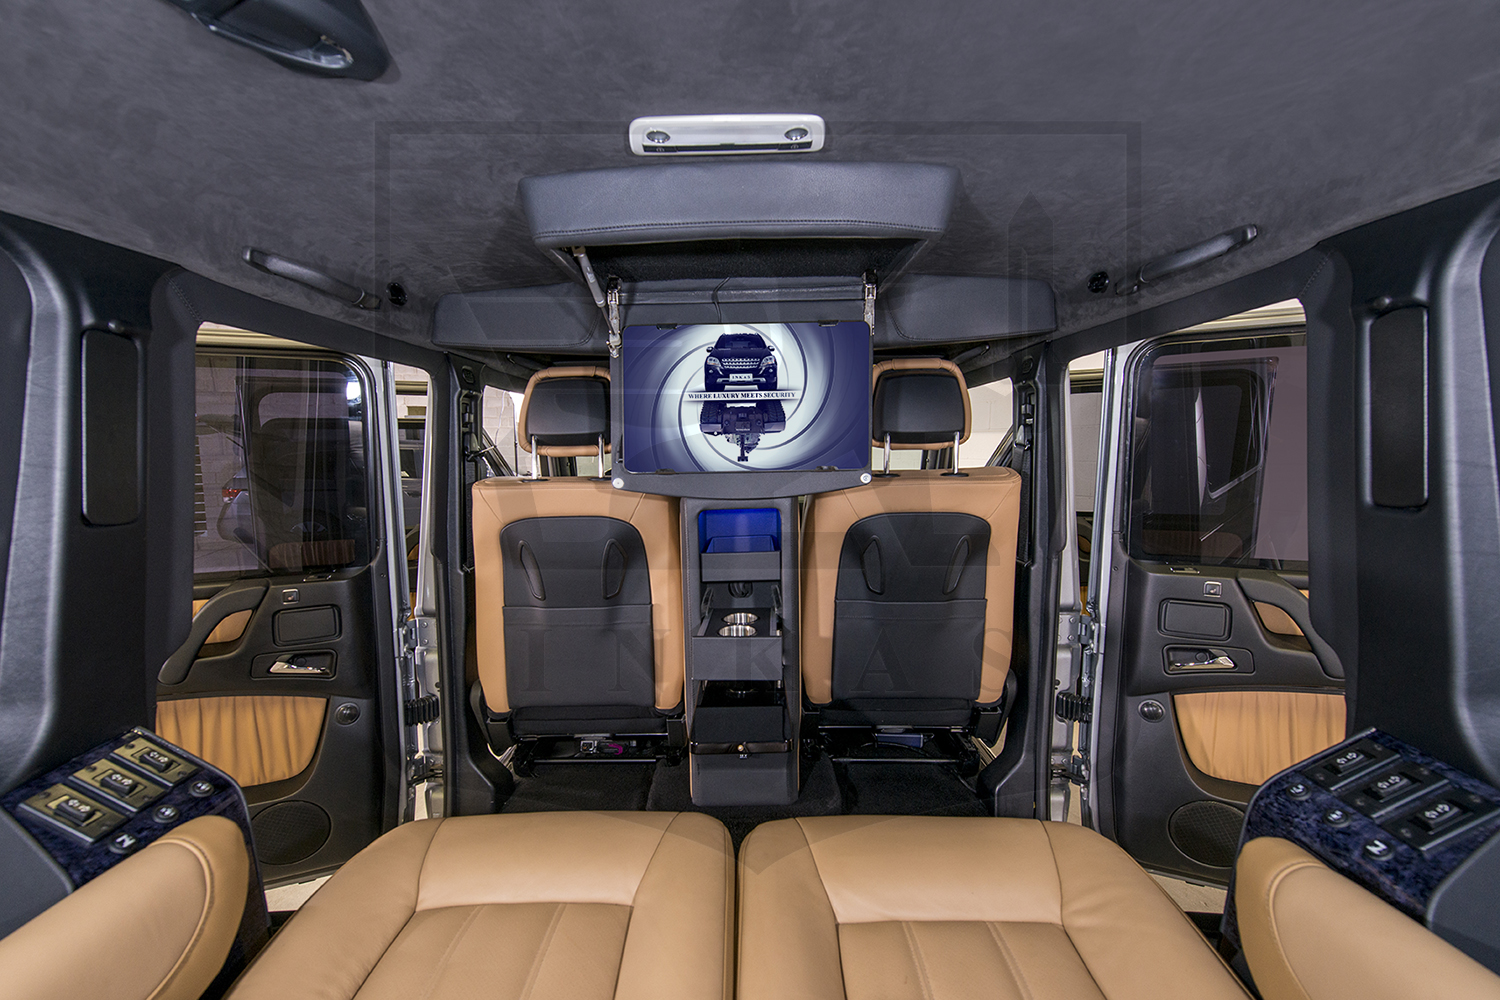 Mercedes G Class Suv >> Armored SUV Based on Mercedes-Benz G63 | eMercedesBenz